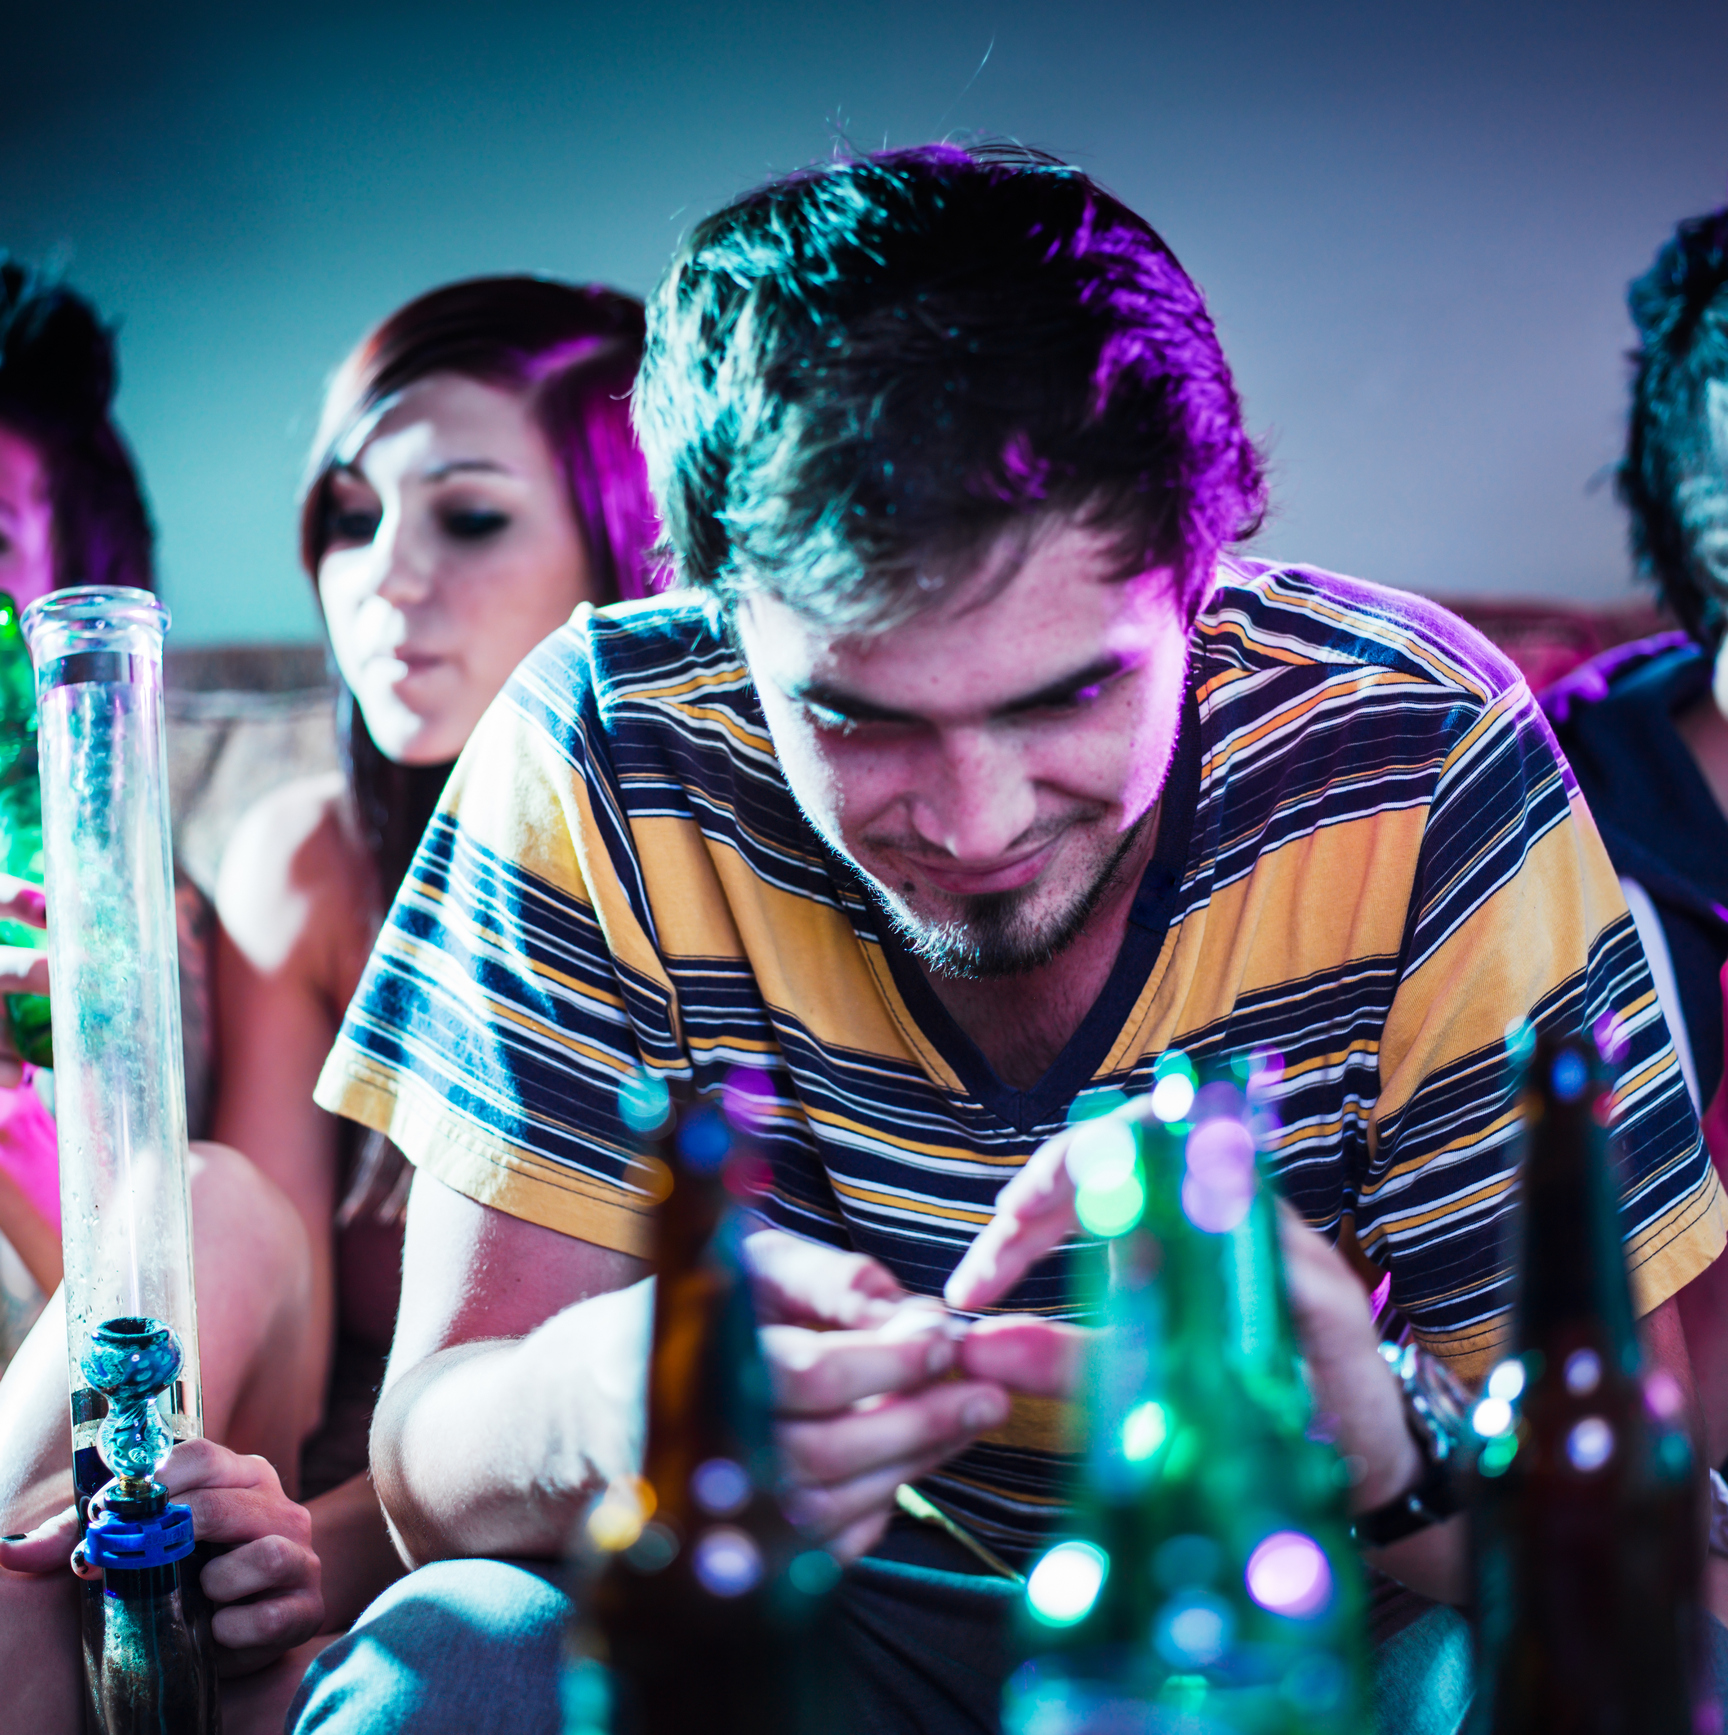 7 Reasons Young Adults Struggle With Drugs And Alcohol